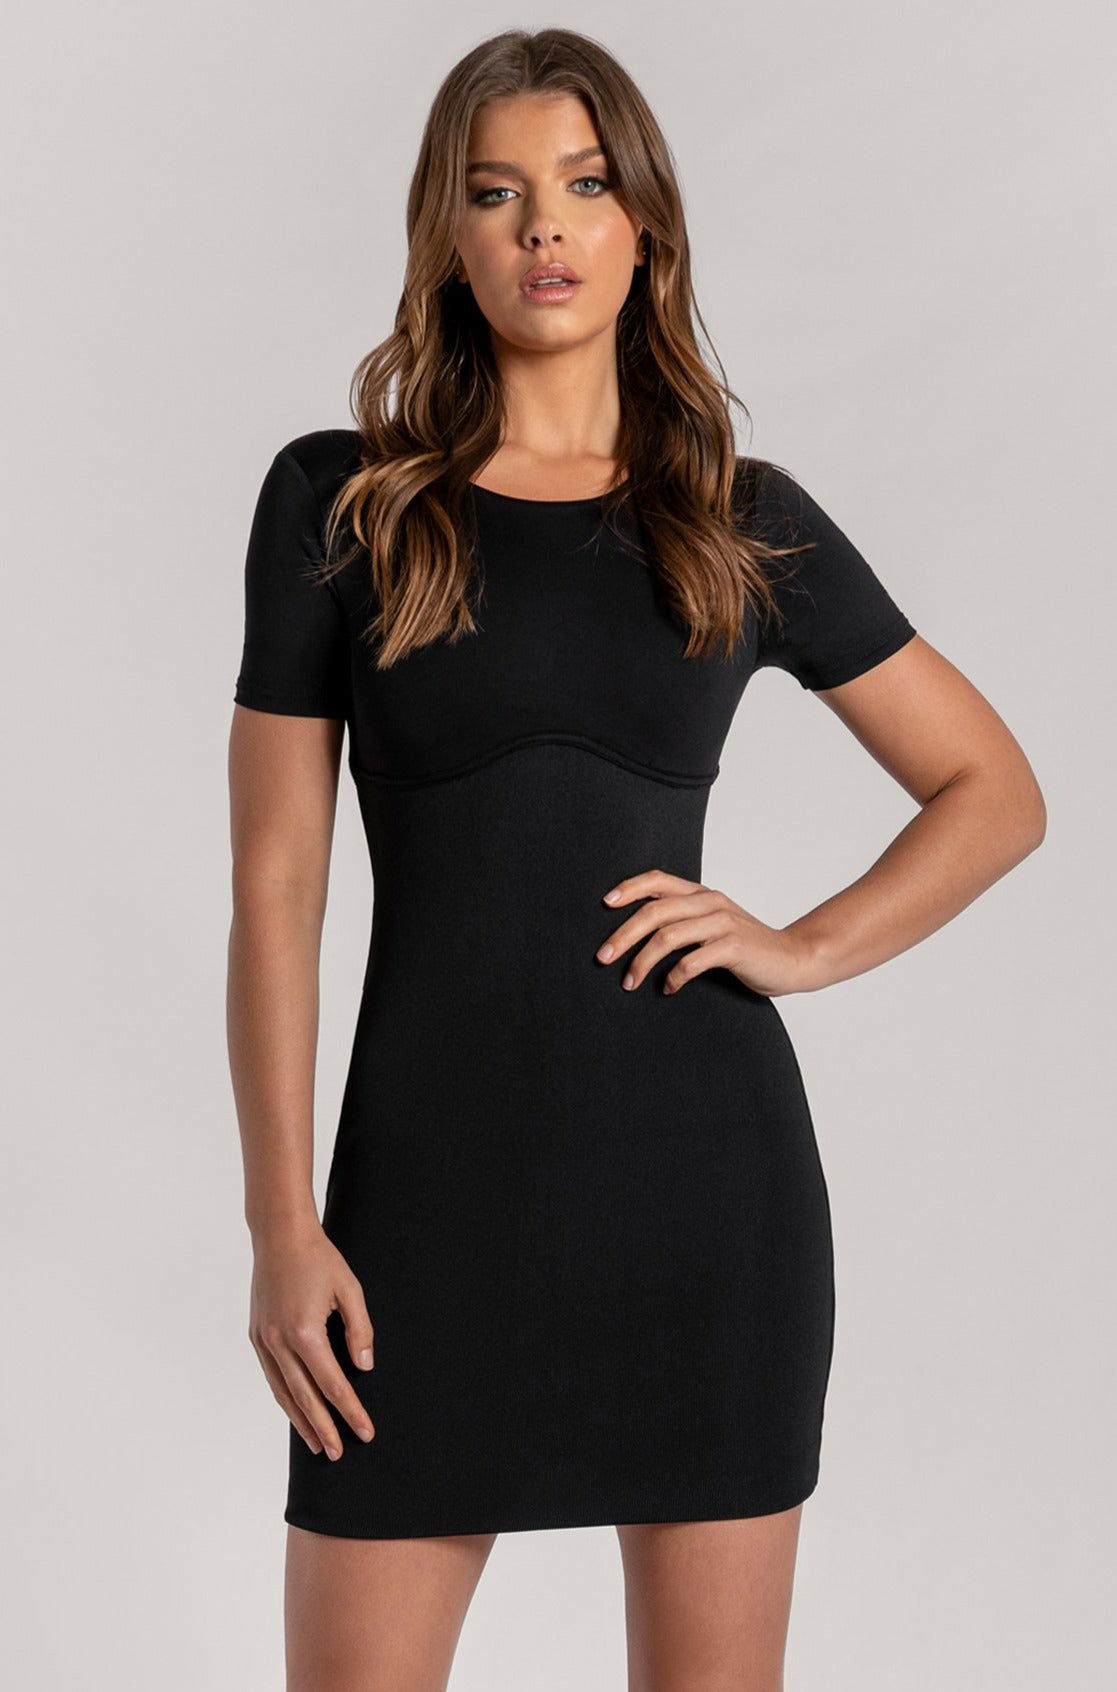 Kenzie Corsetted Waist Short Sleeve Mini Dress - Black - MESHKI